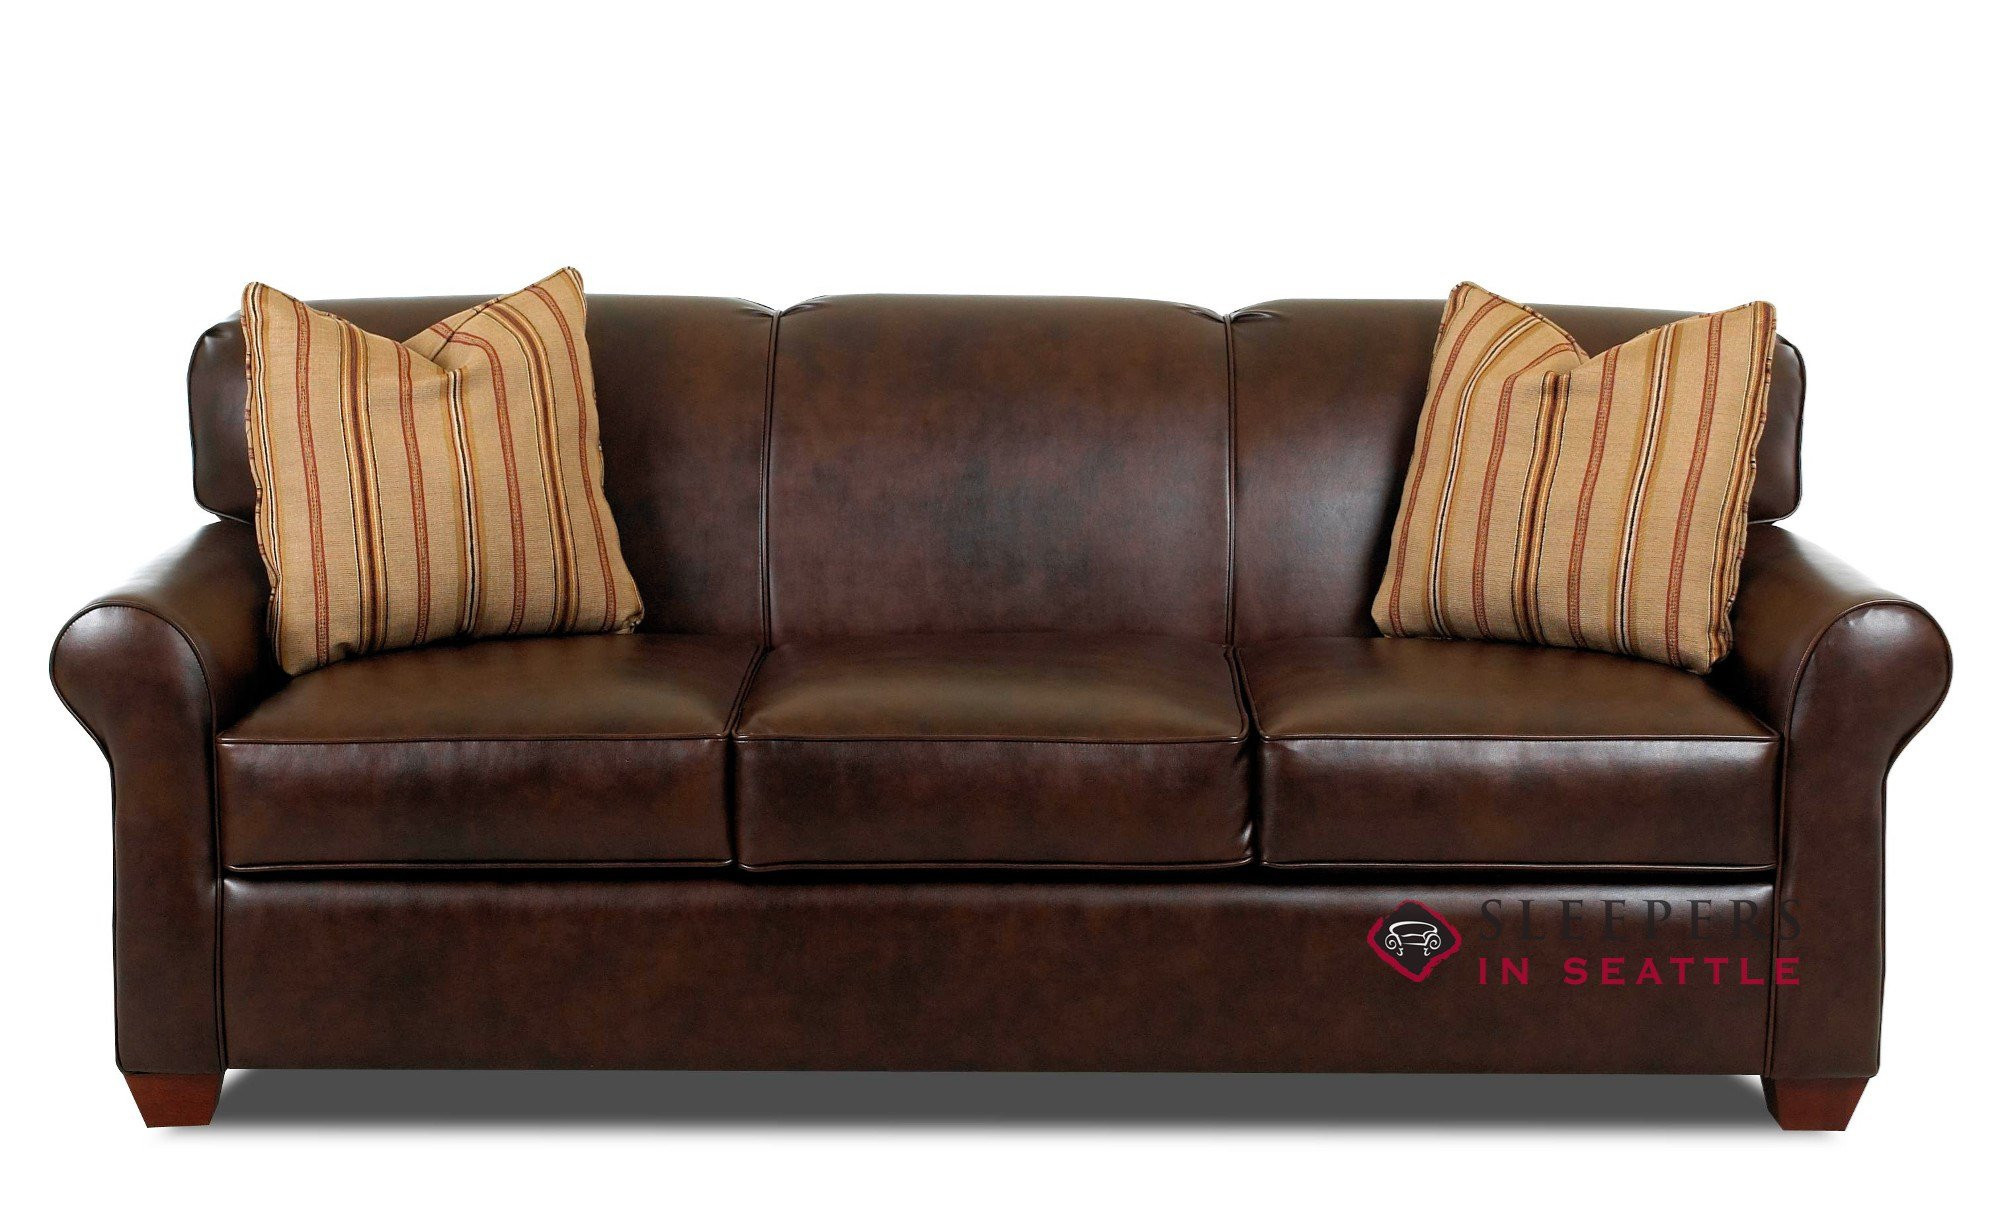 Best ideas about Leather Sofa Sleeper . Save or Pin Customize and Personalize Calgary Queen Leather Sofa by Now.